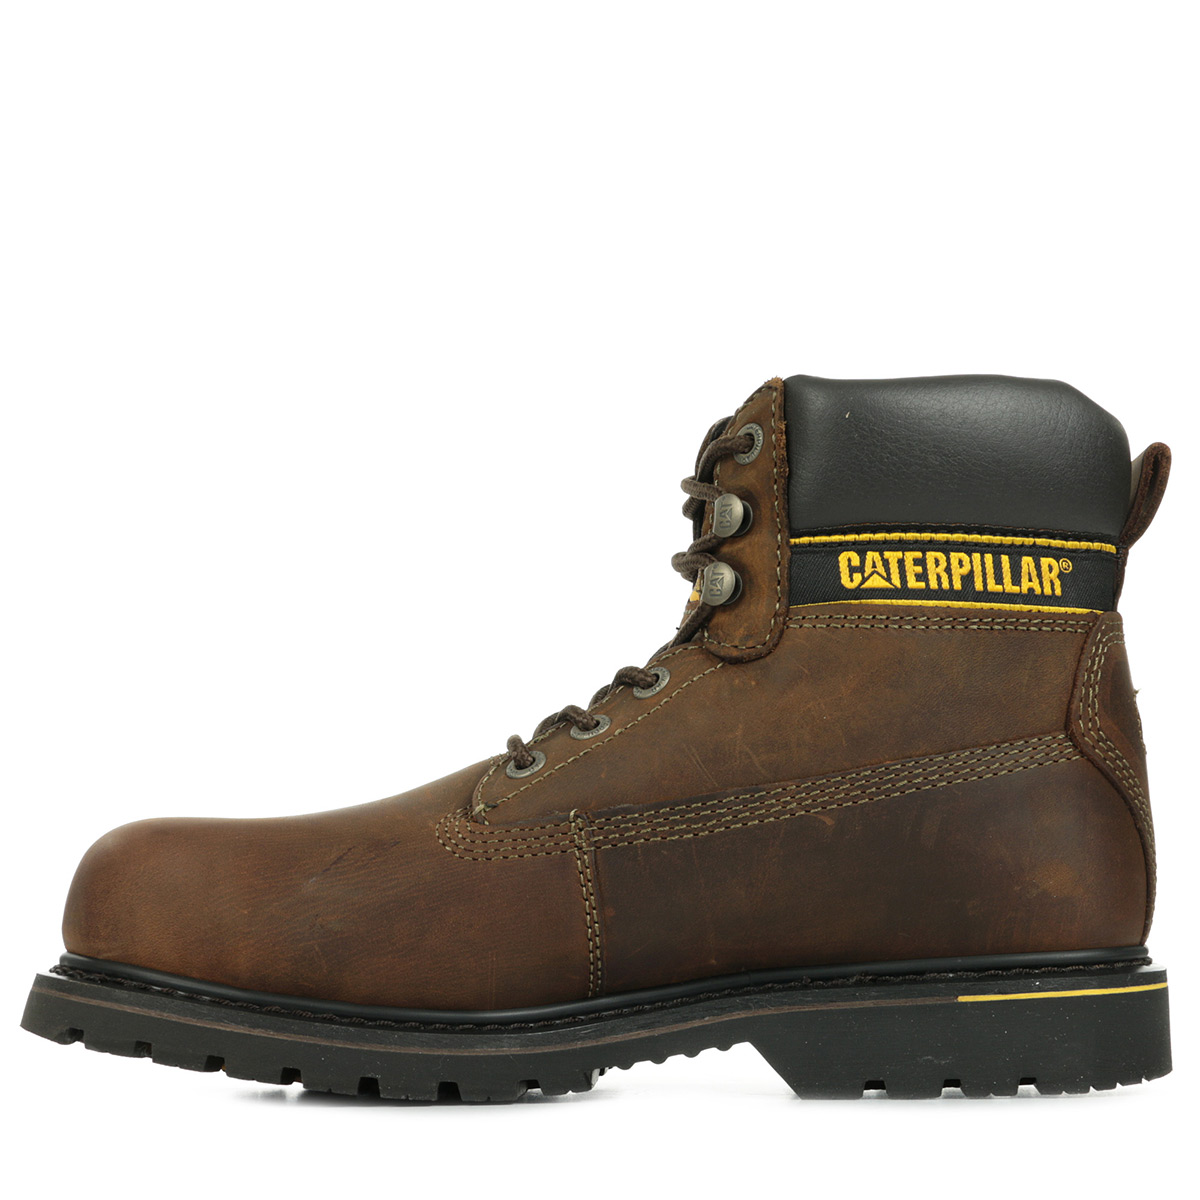 shoes boots caterpillar mens holton sb dark brown size leather laces ebay. Black Bedroom Furniture Sets. Home Design Ideas